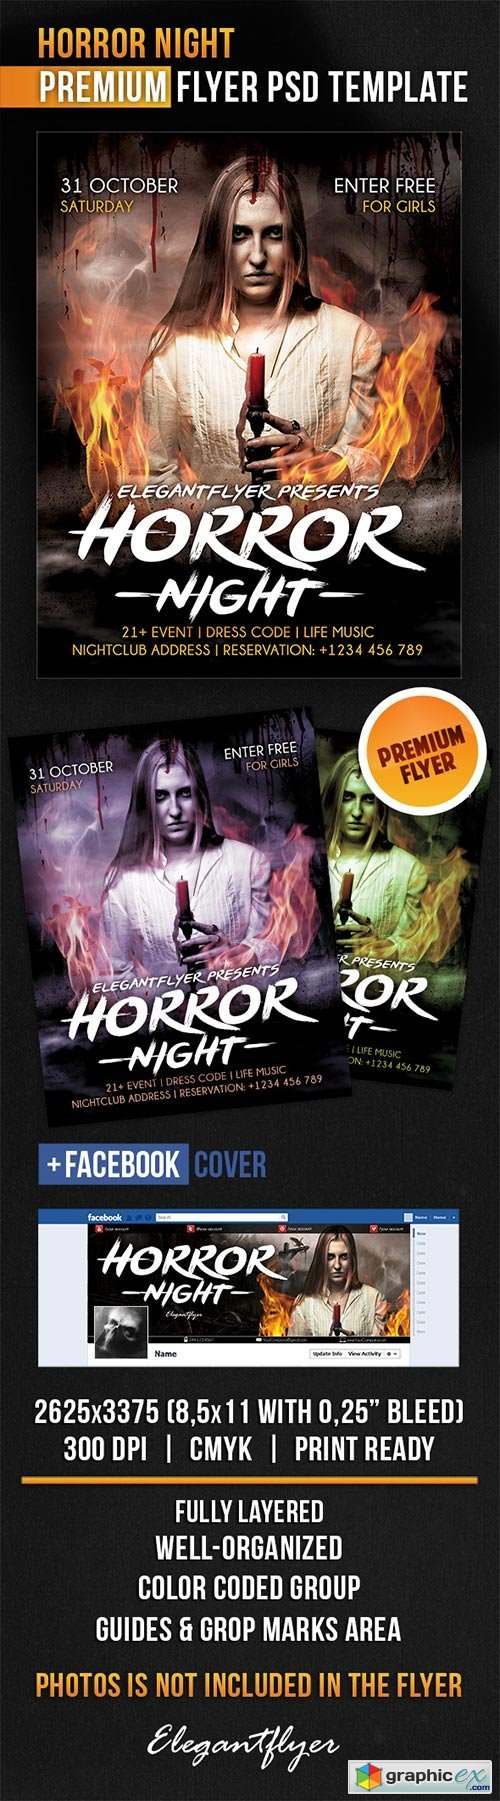 Horror Night Flyer PSD Template + Facebook Cover